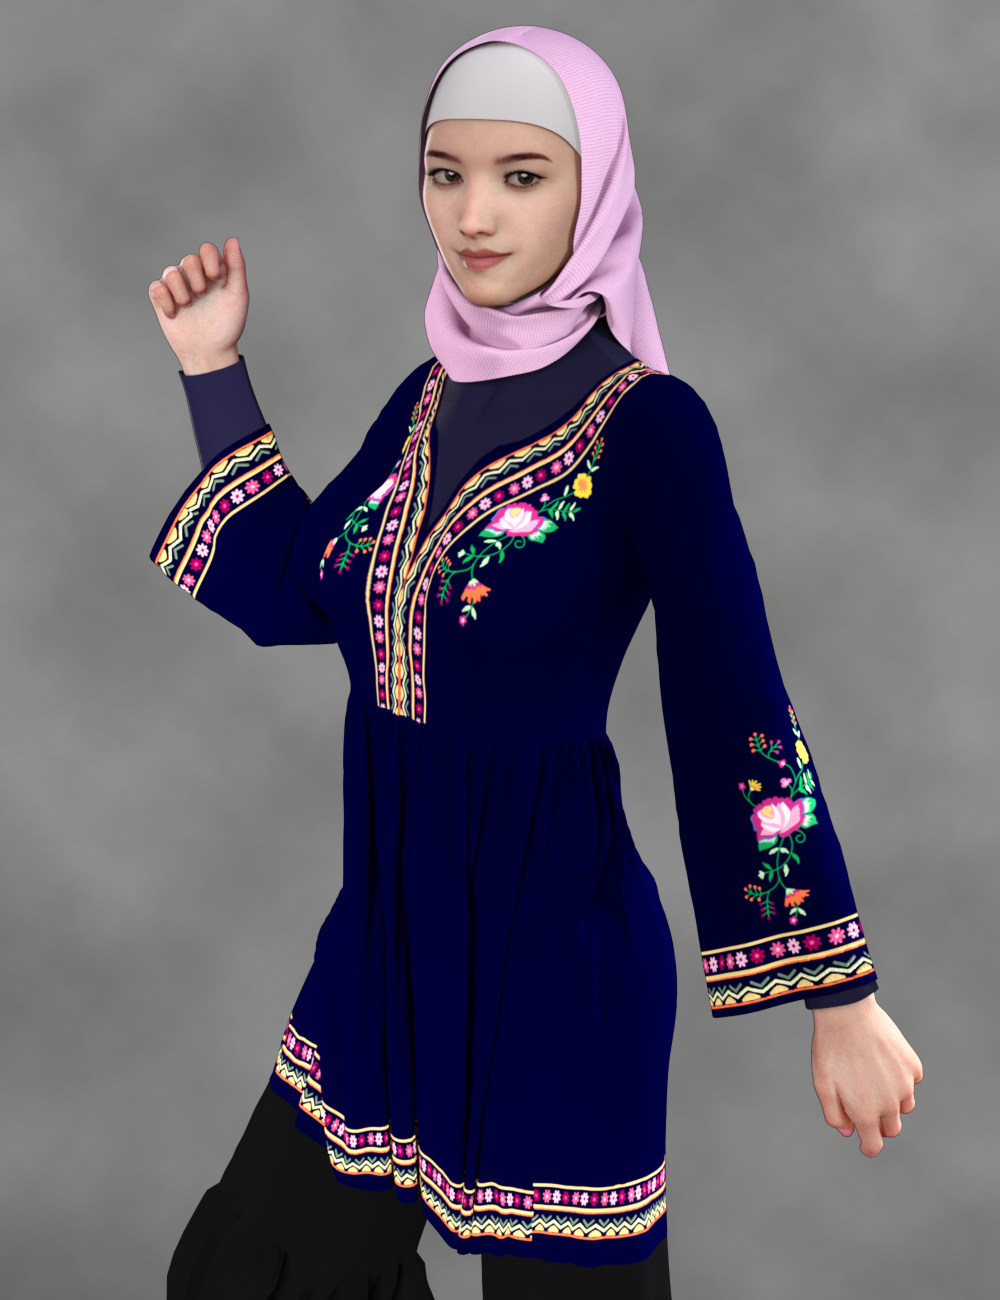 Hijabi girl with short tunic by PinkLotus